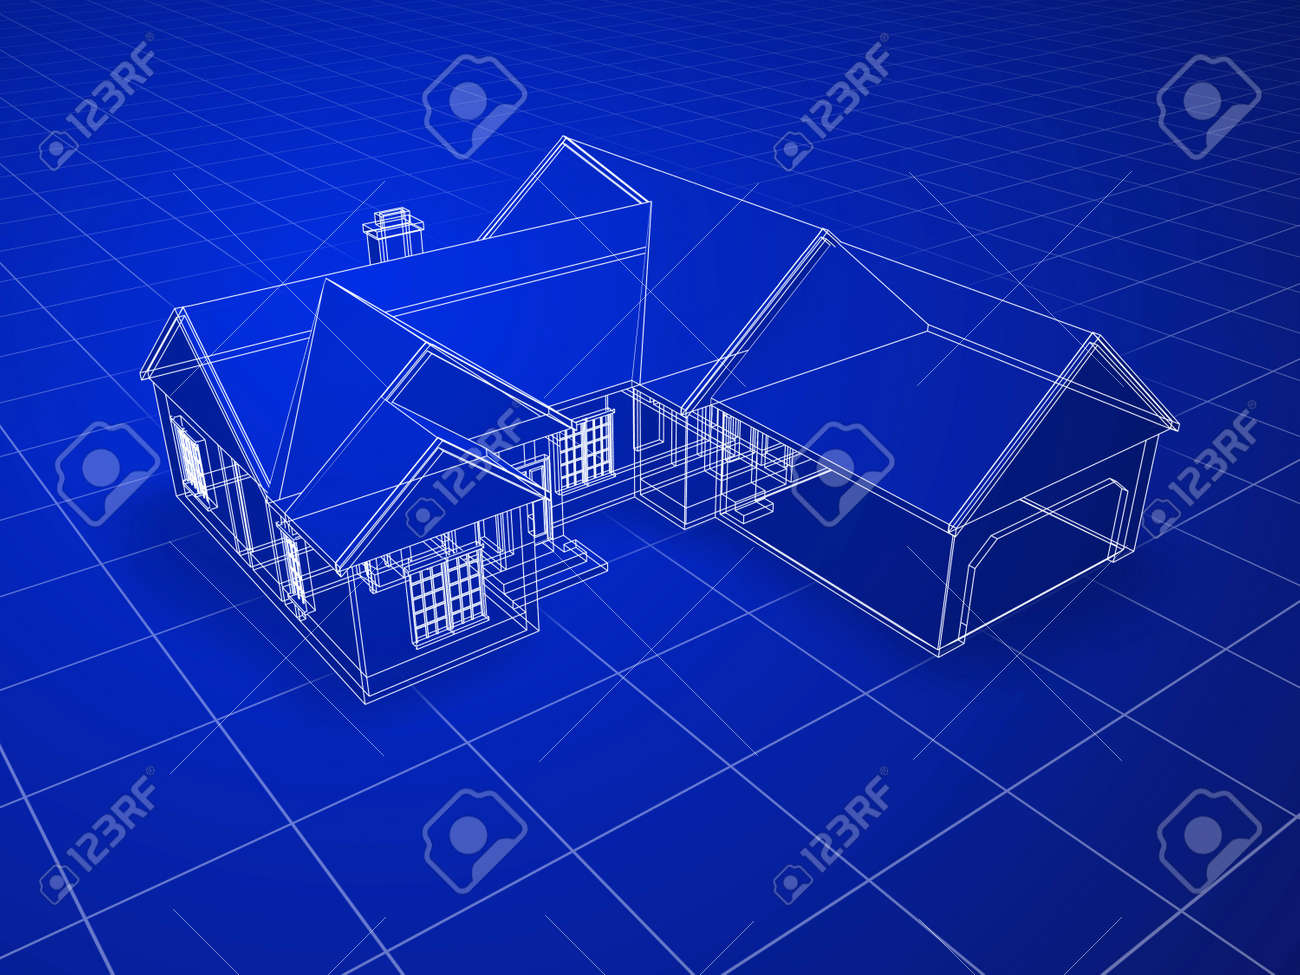 House blue print blueprint style 3d rendered house white outlines on blue background